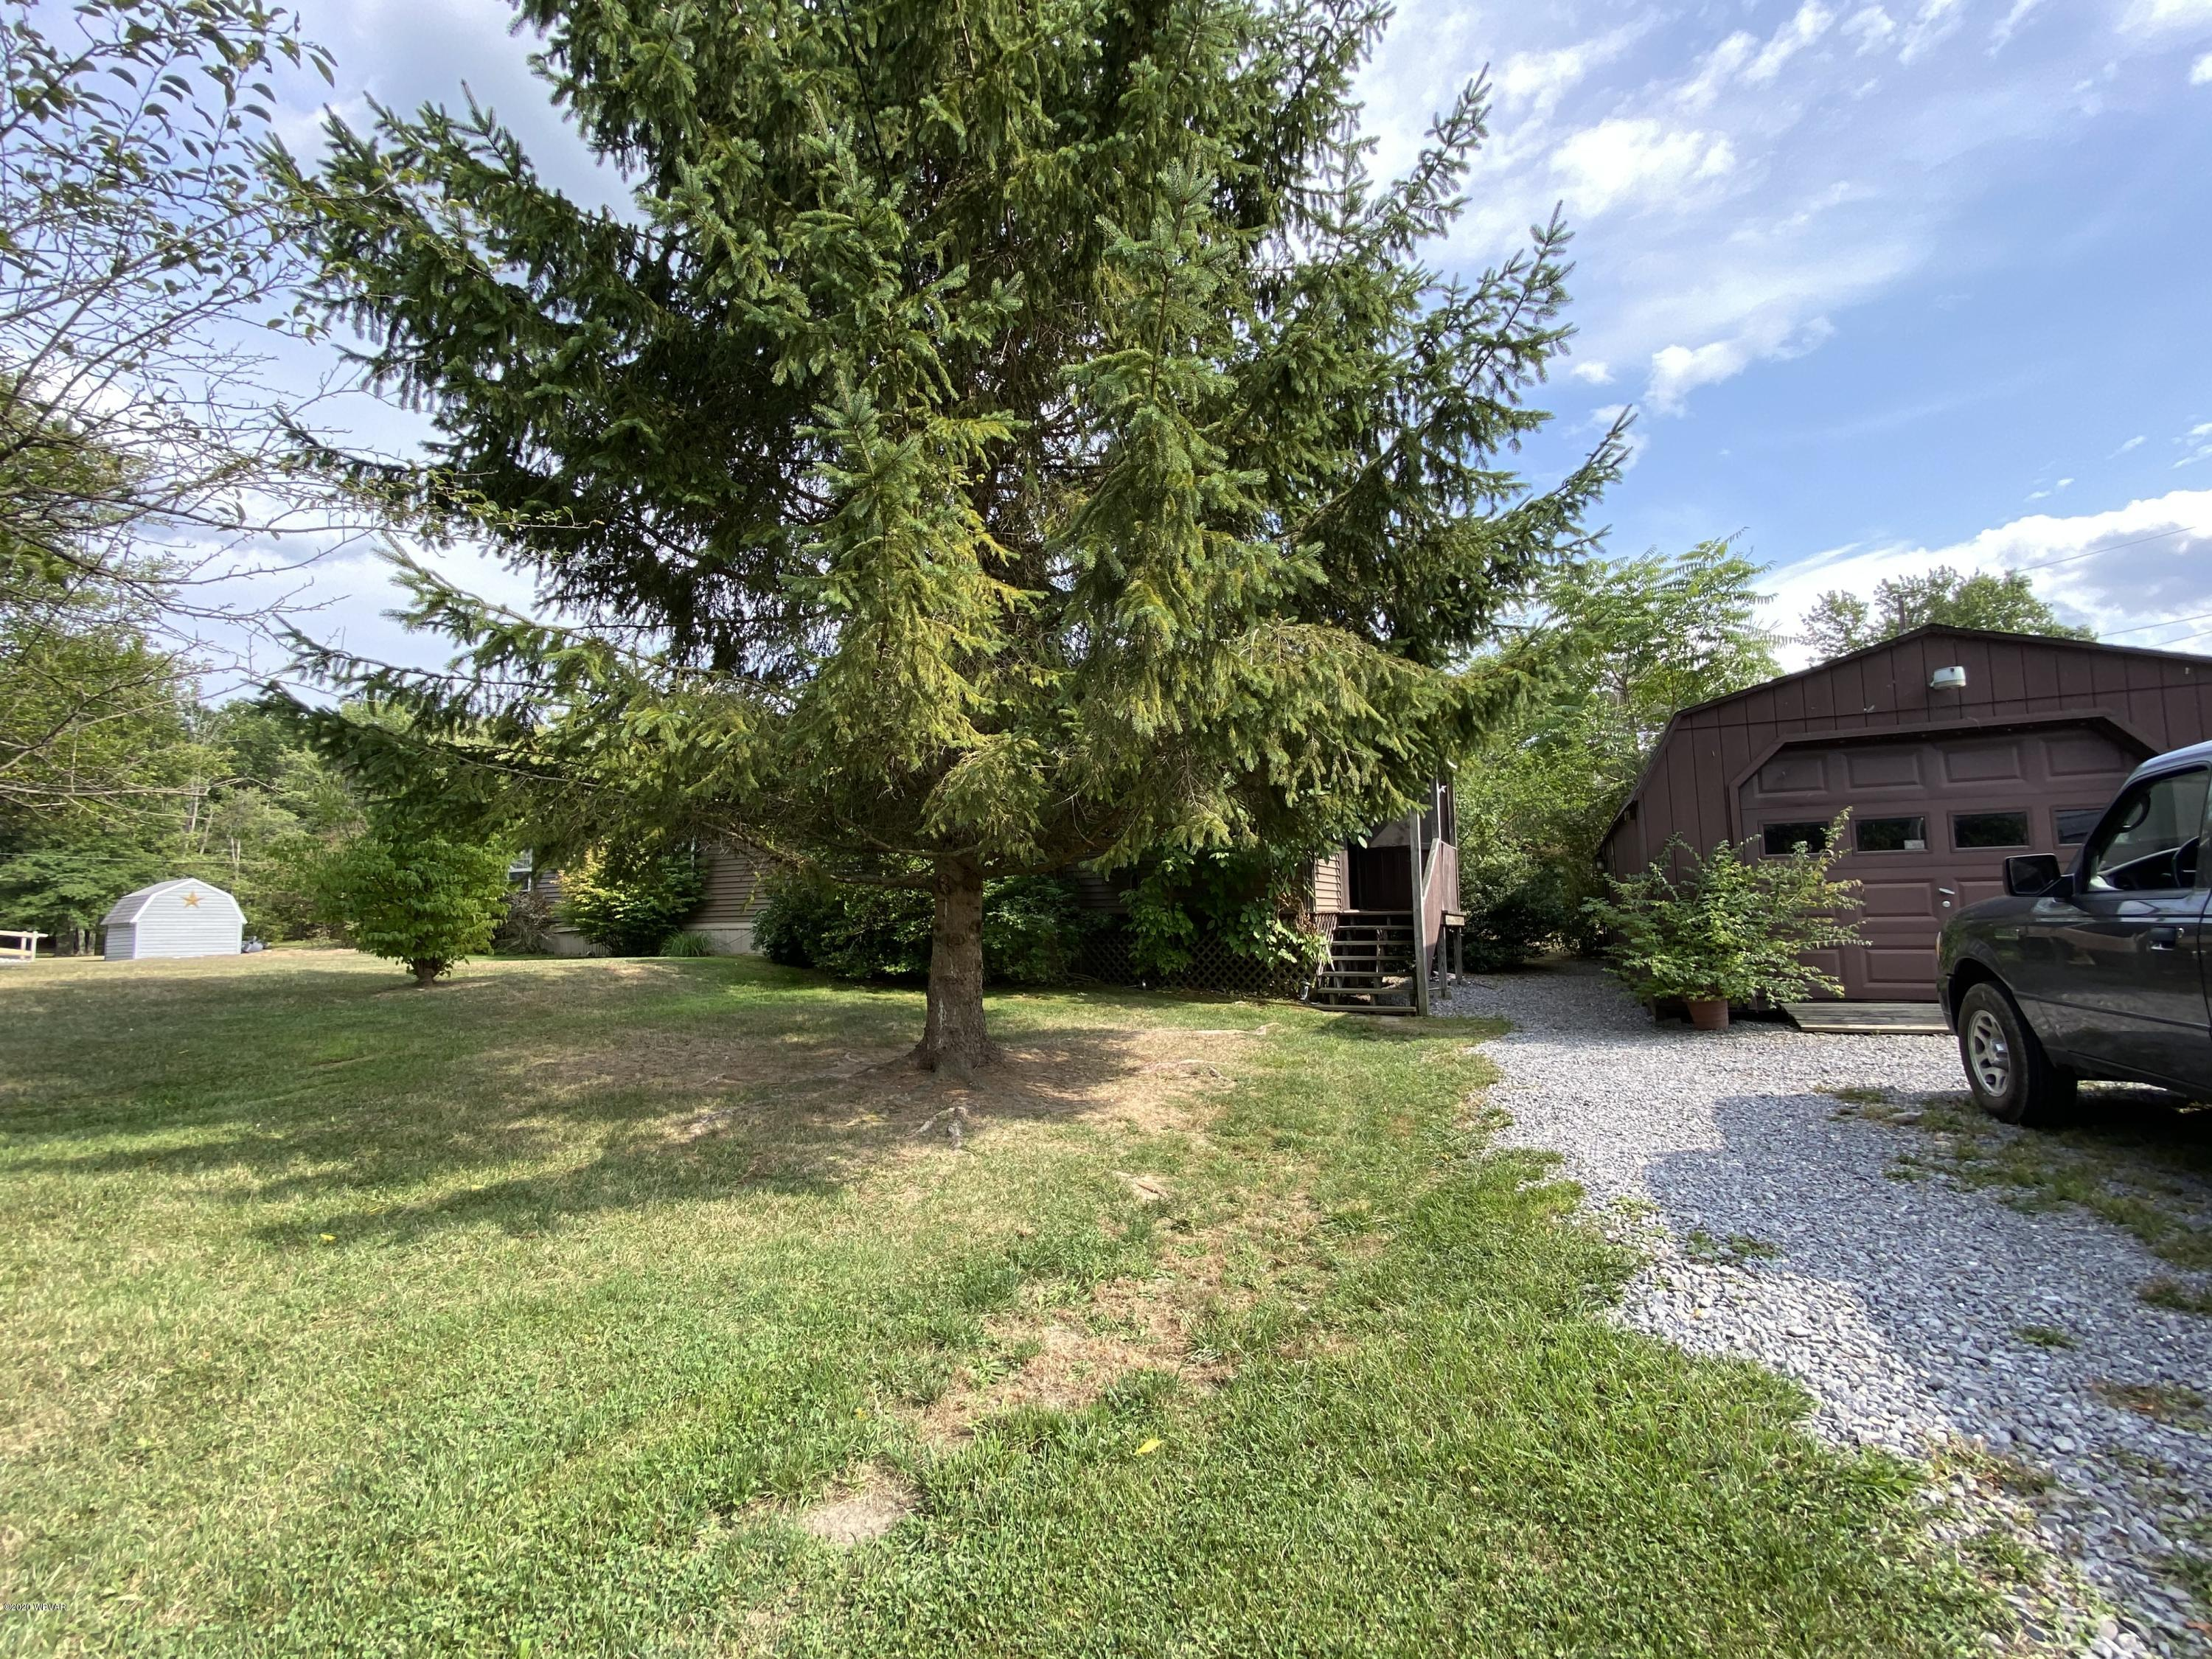 388 PINE MOUNTAIN ROAD, Lock Haven, PA 17745, 3 Bedrooms Bedrooms, ,1 BathroomBathrooms,Residential,For sale,PINE MOUNTAIN,WB-90960